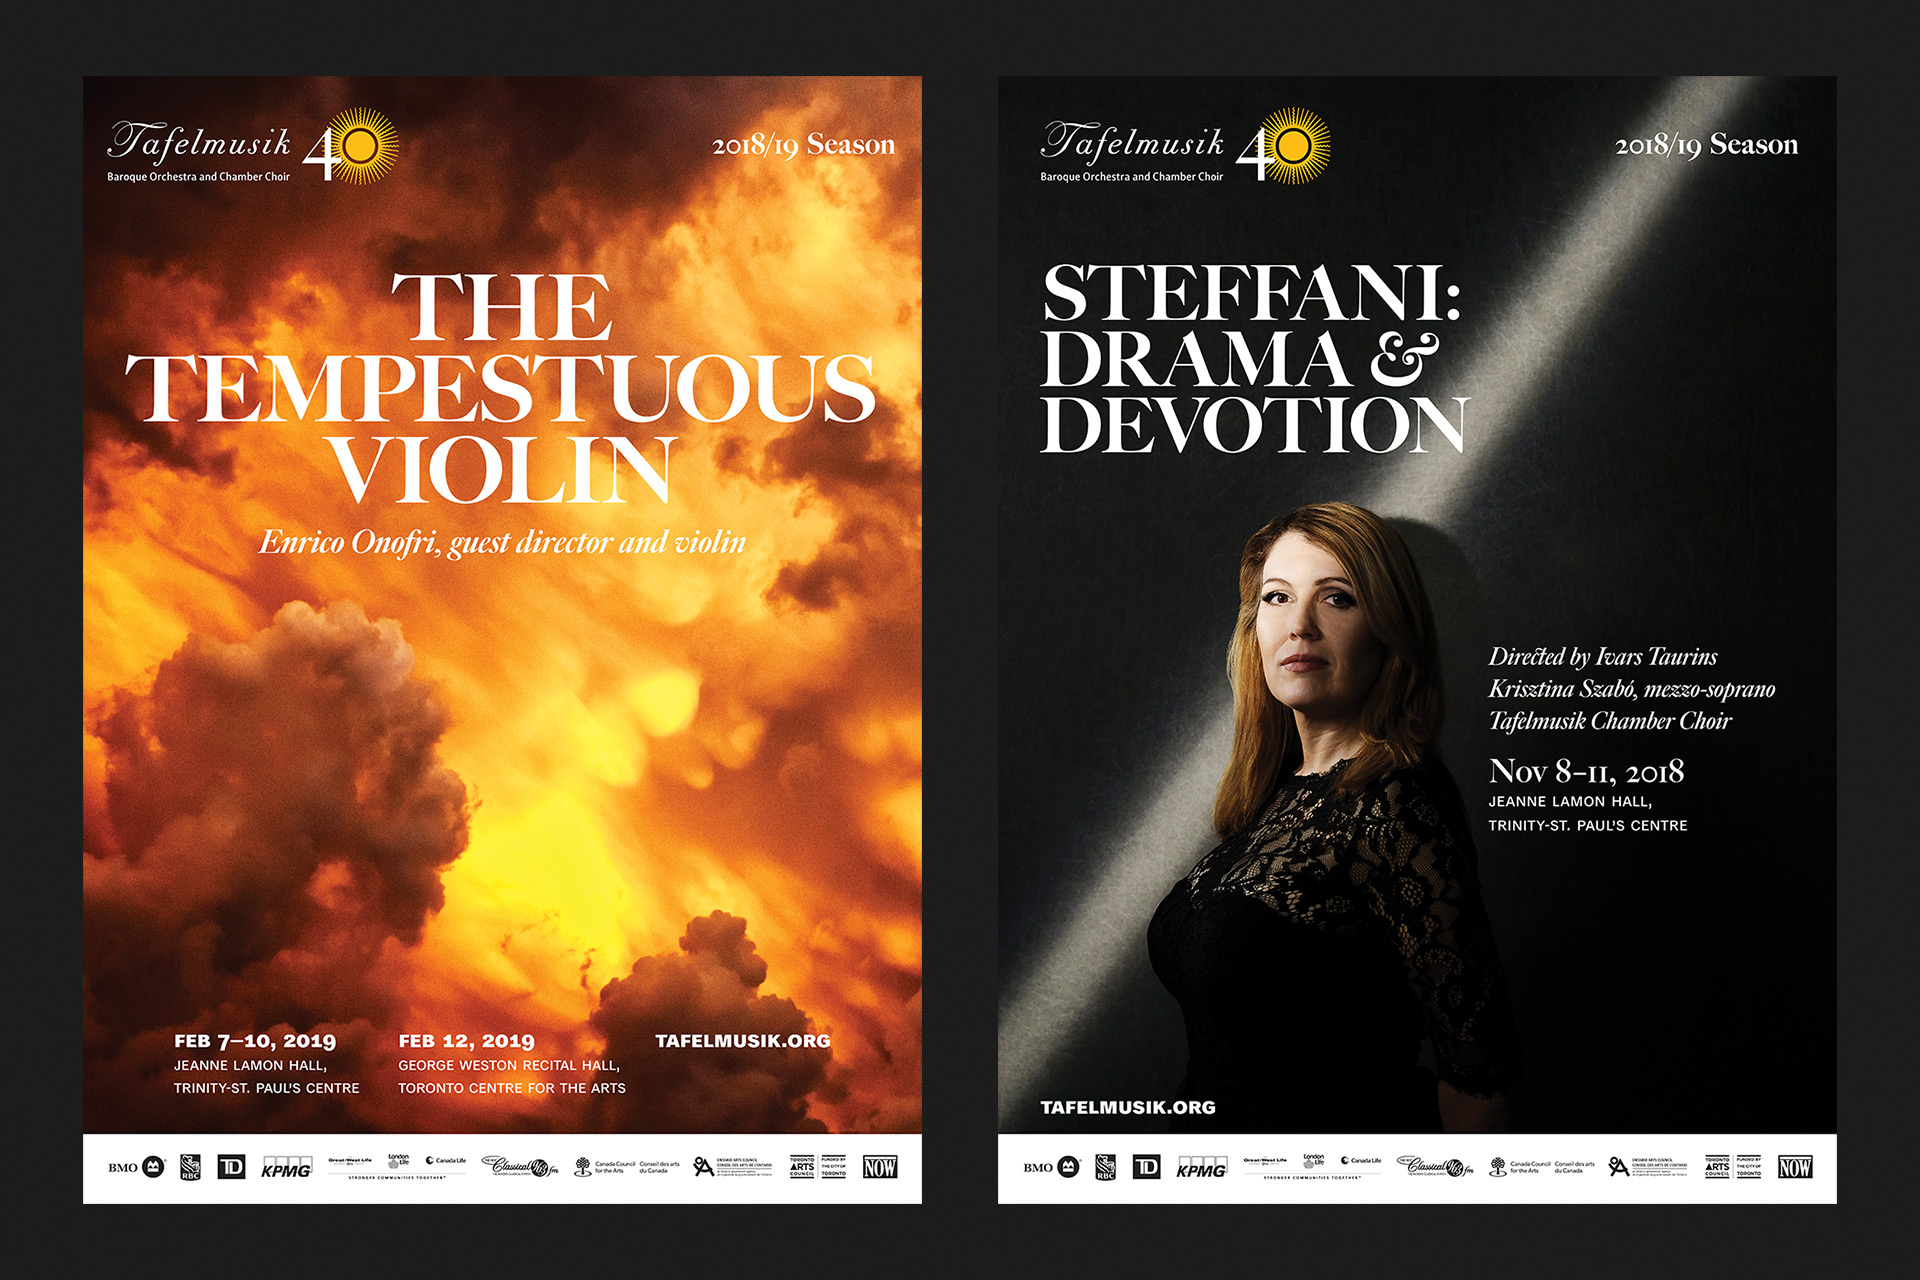 The Tempestuous Violin and Steffani: Drama & Devotion posters